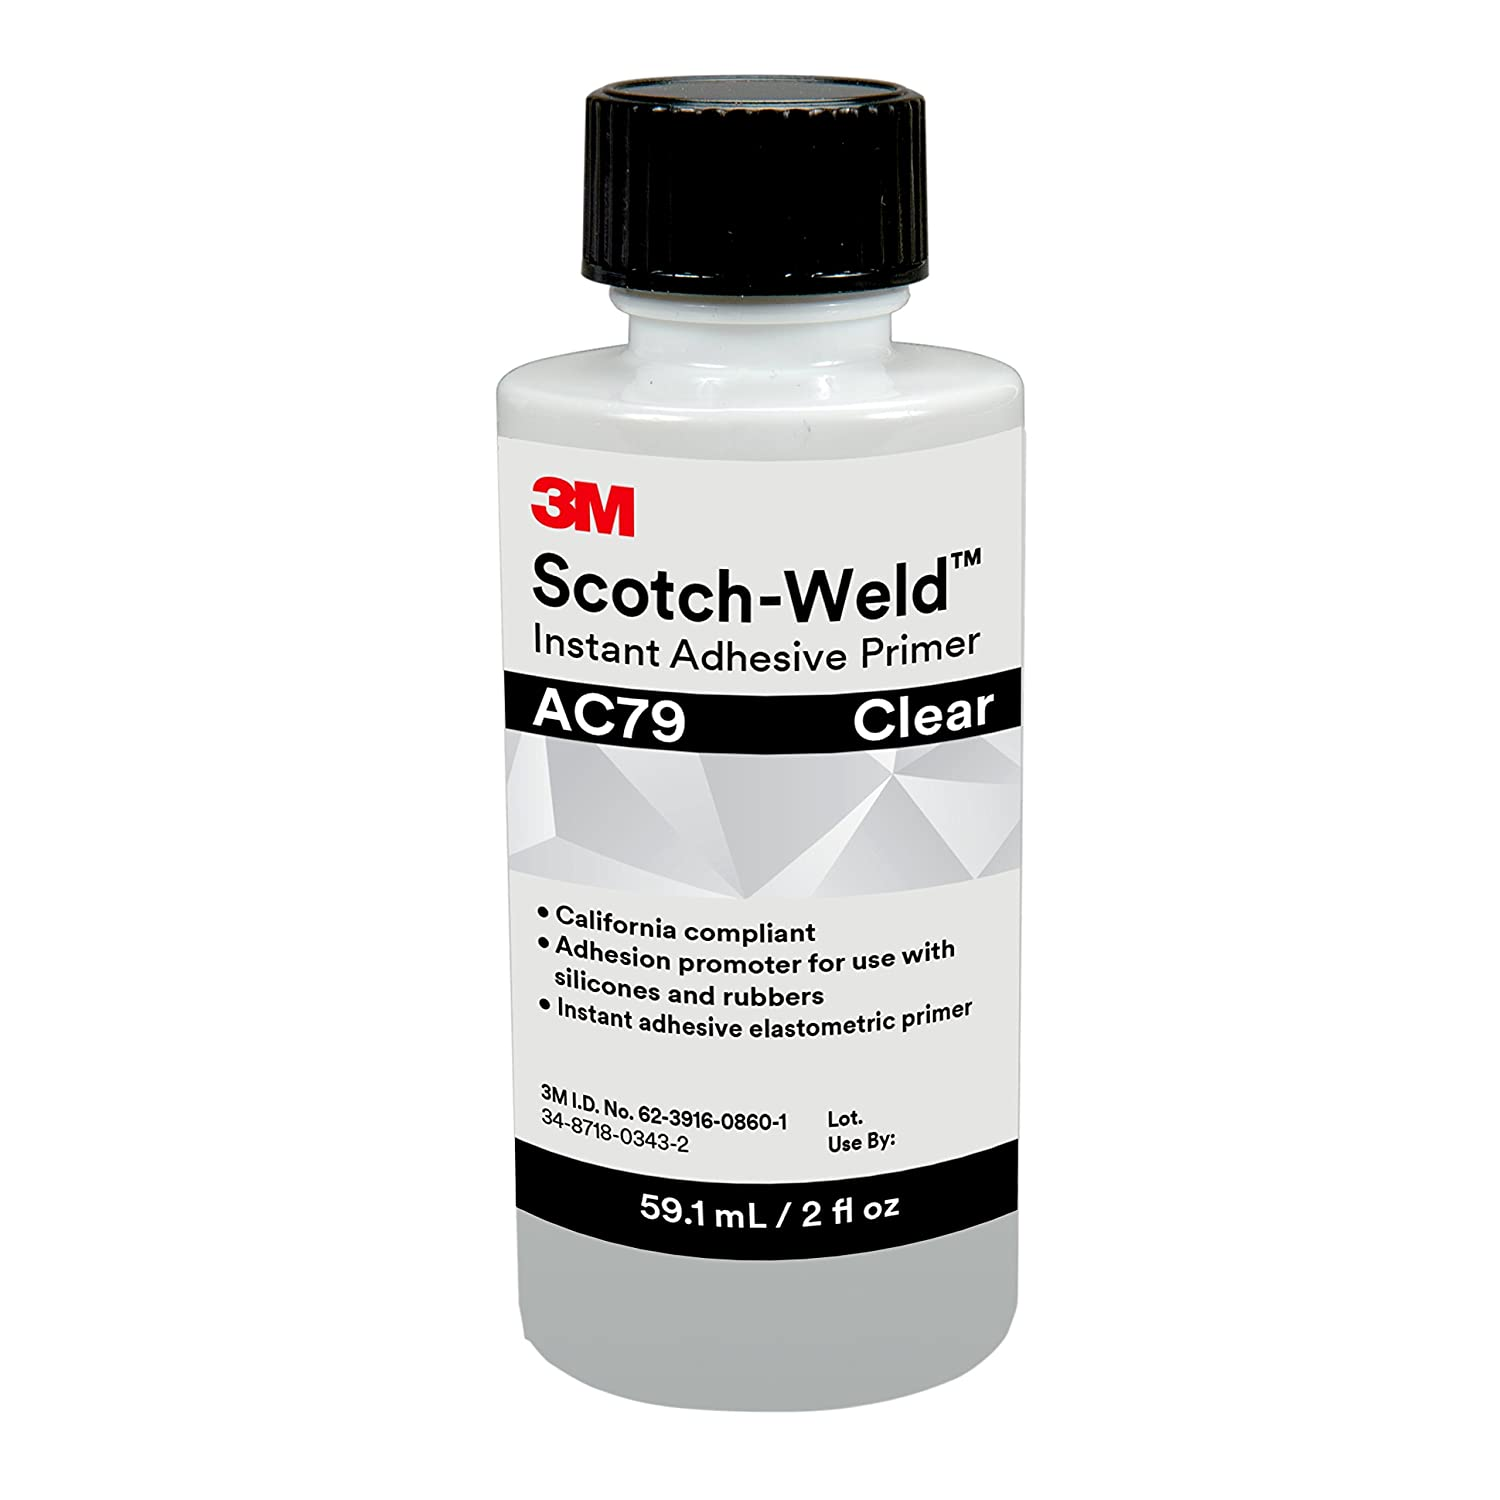 3M Scotch-Weld 31388 Instant Adhesive Primer AC79, 59.1 mL, 2 fl. oz. 3M Industrial Market Center